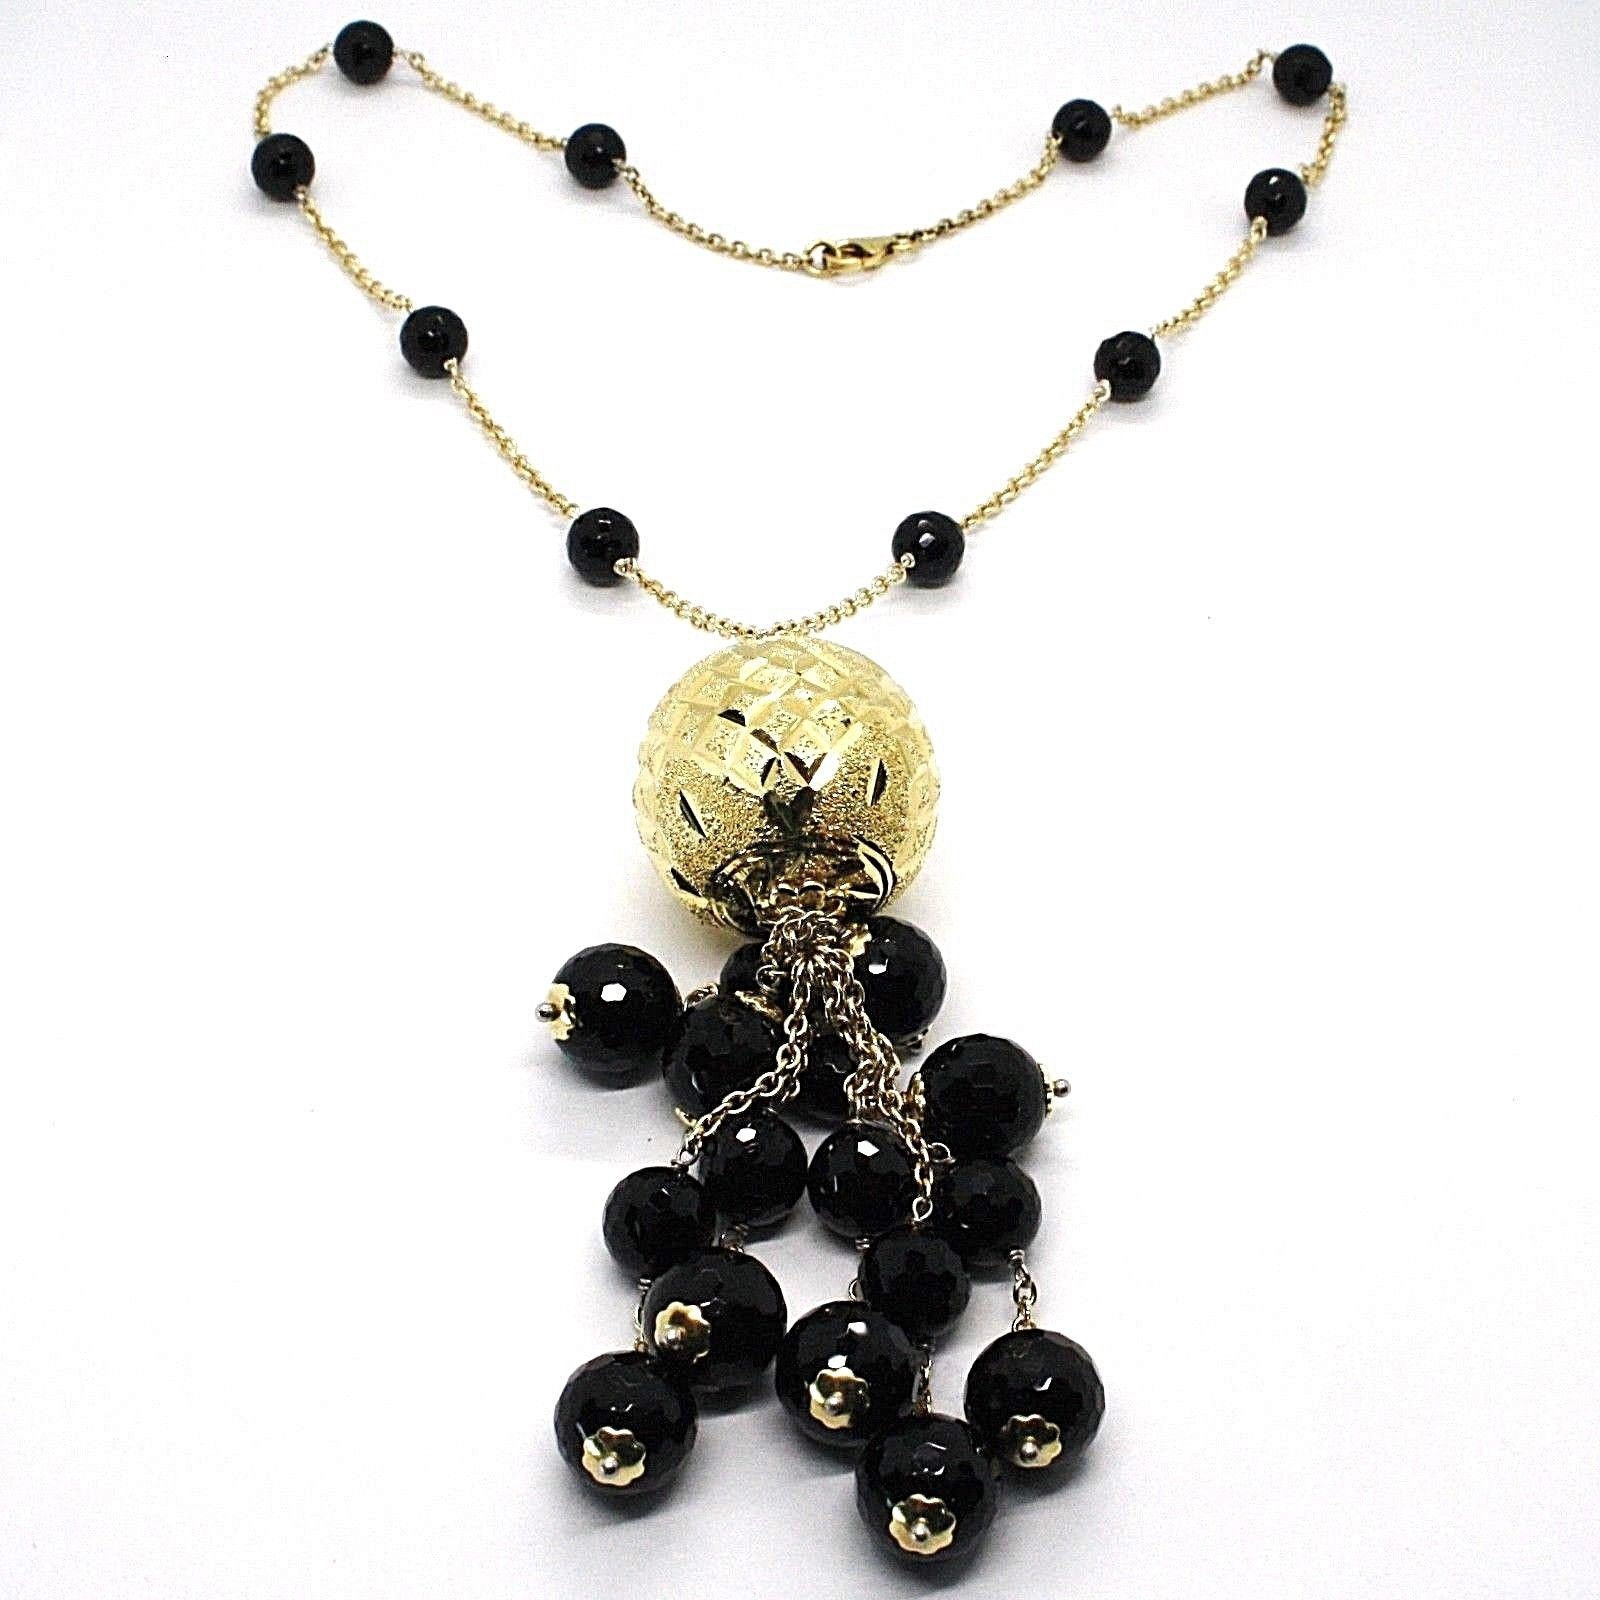 Silver necklace 925, Yellow, Large Machined Ball, BLACK ONYX Waterfall